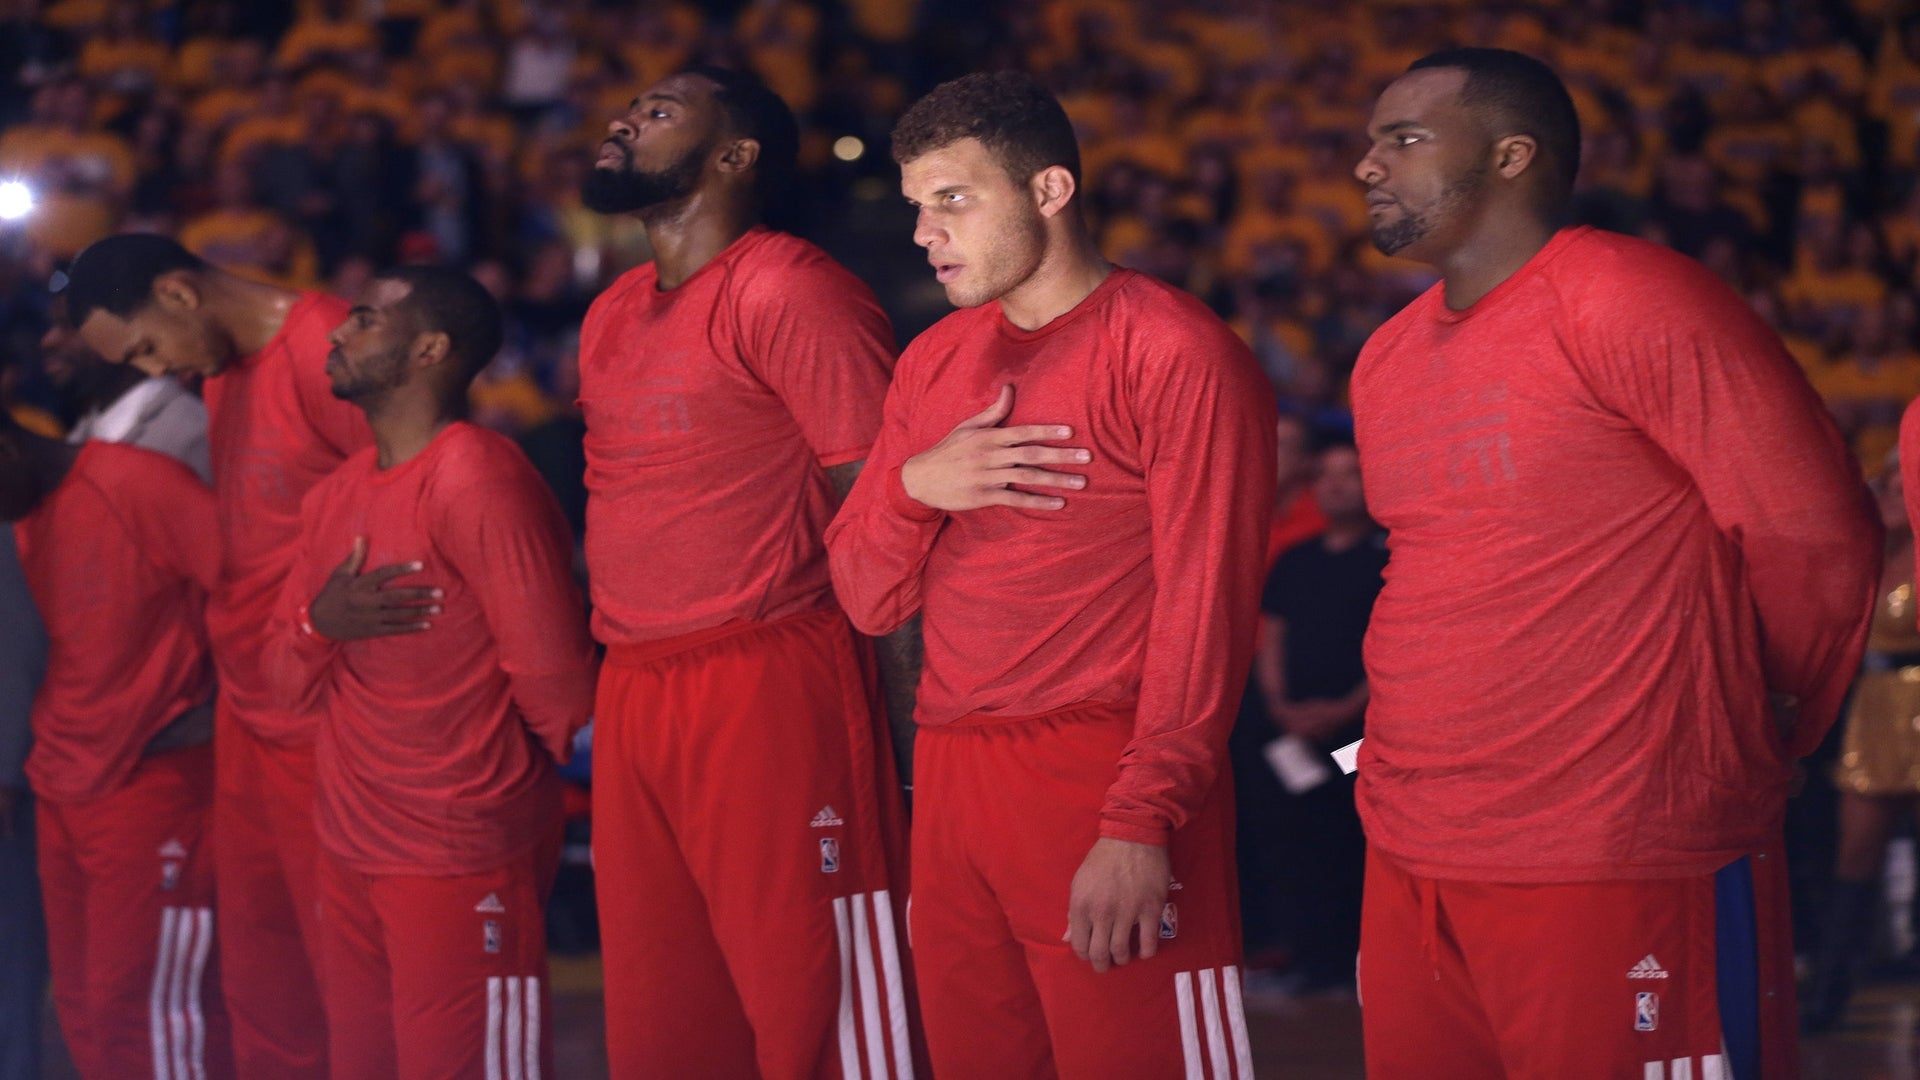 ESSENCE Poll: What Should NBA Players Do in Response to Clippers Controversy?